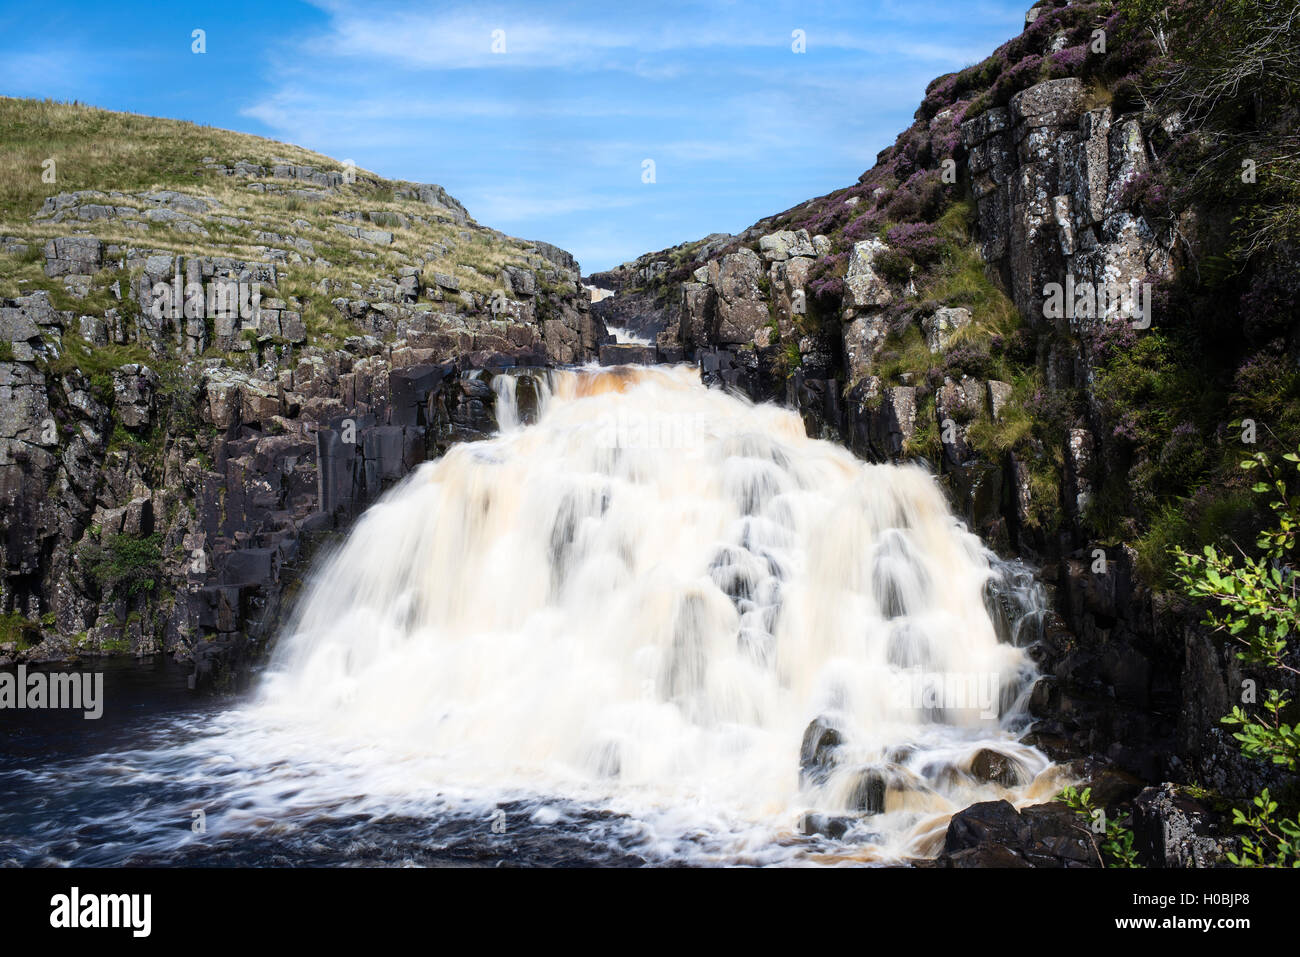 Cauldron Snout waterfall, Upper Teesdale National Nature Reserve, Durham, England, UK - Stock Image